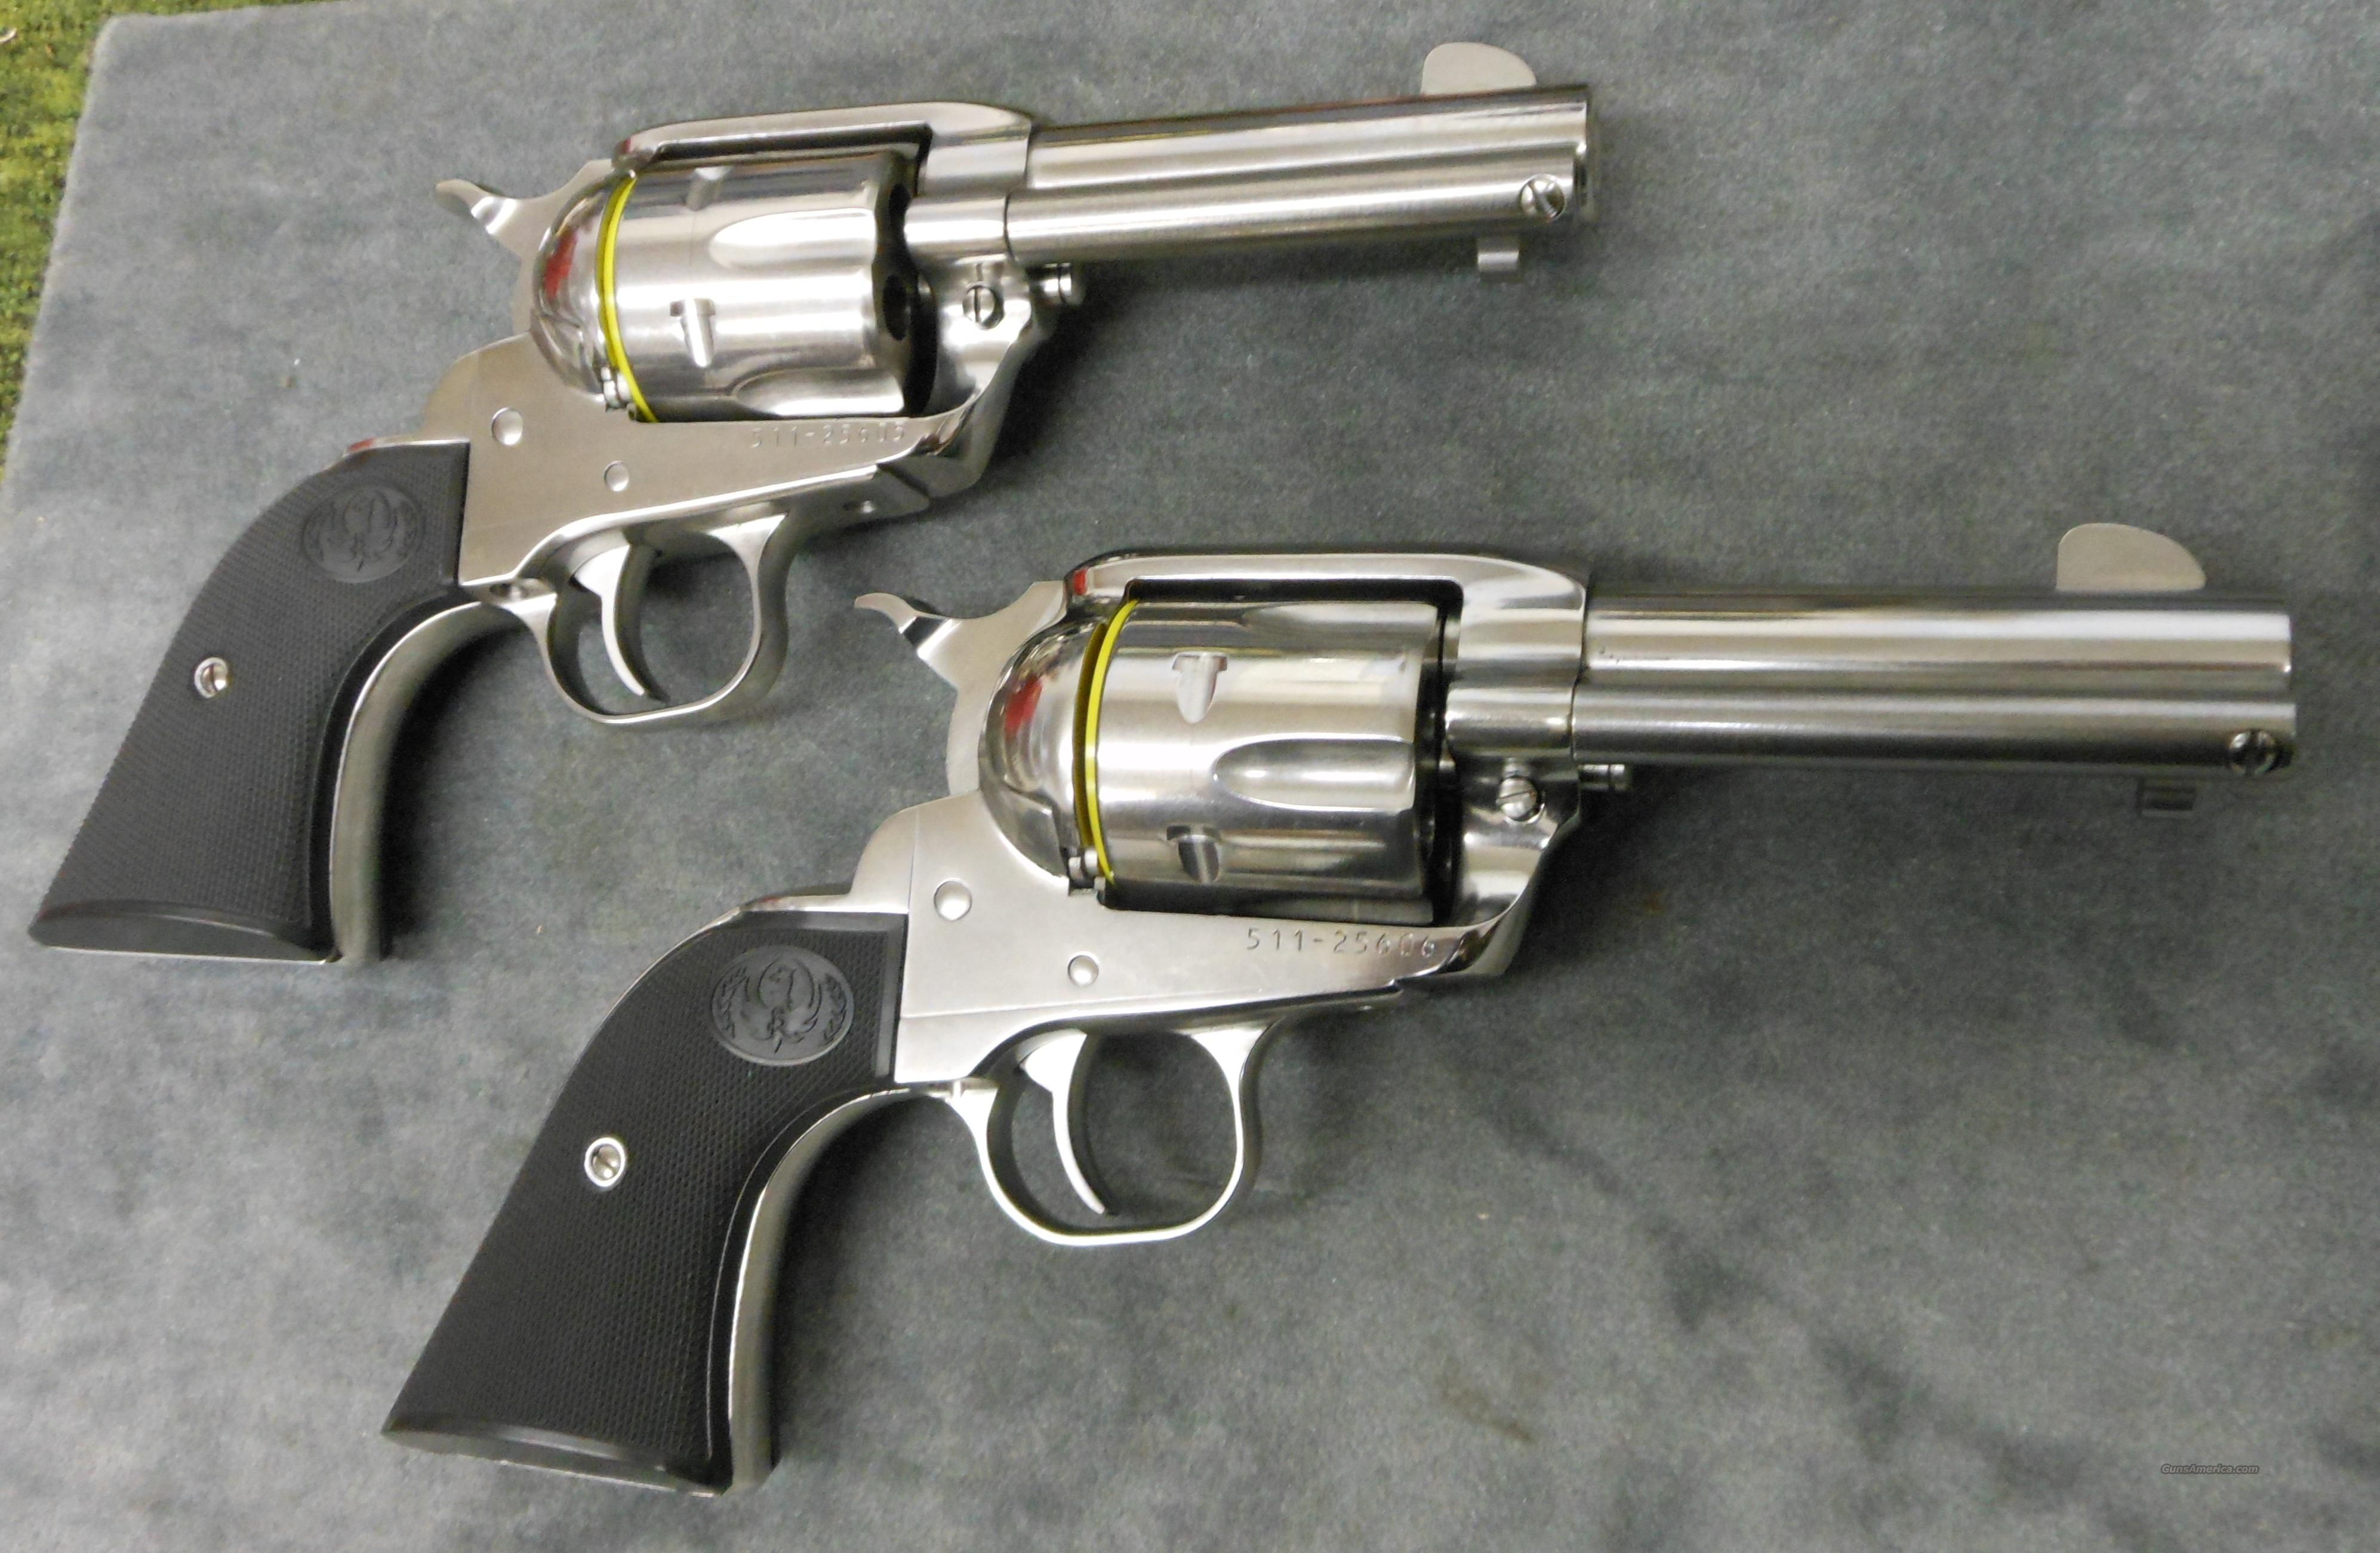 "PAIR OF RUGER NEW VAQUERO MONTADO 3.75"" SAA 357 MAGNUM REVOLVERS *SEQUENTIAL SERIAL NUMBERS* (KNV-353, 05126)  Guns > Pistols > Ruger Single Action Revolvers > Cowboy Action"